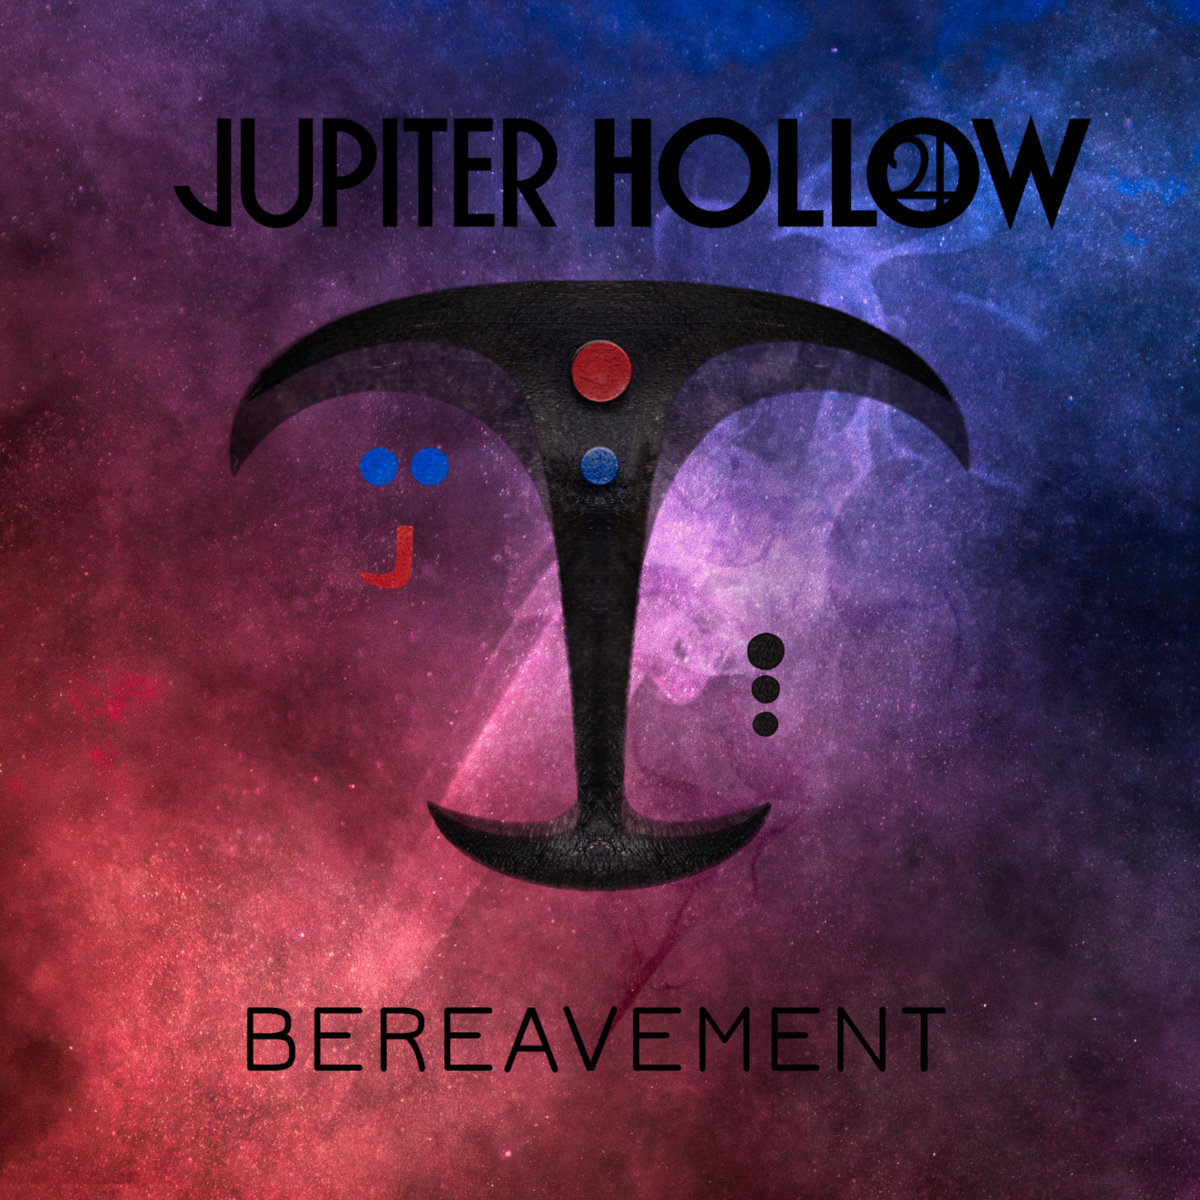 Bereavement - JUPITER HOLLOW